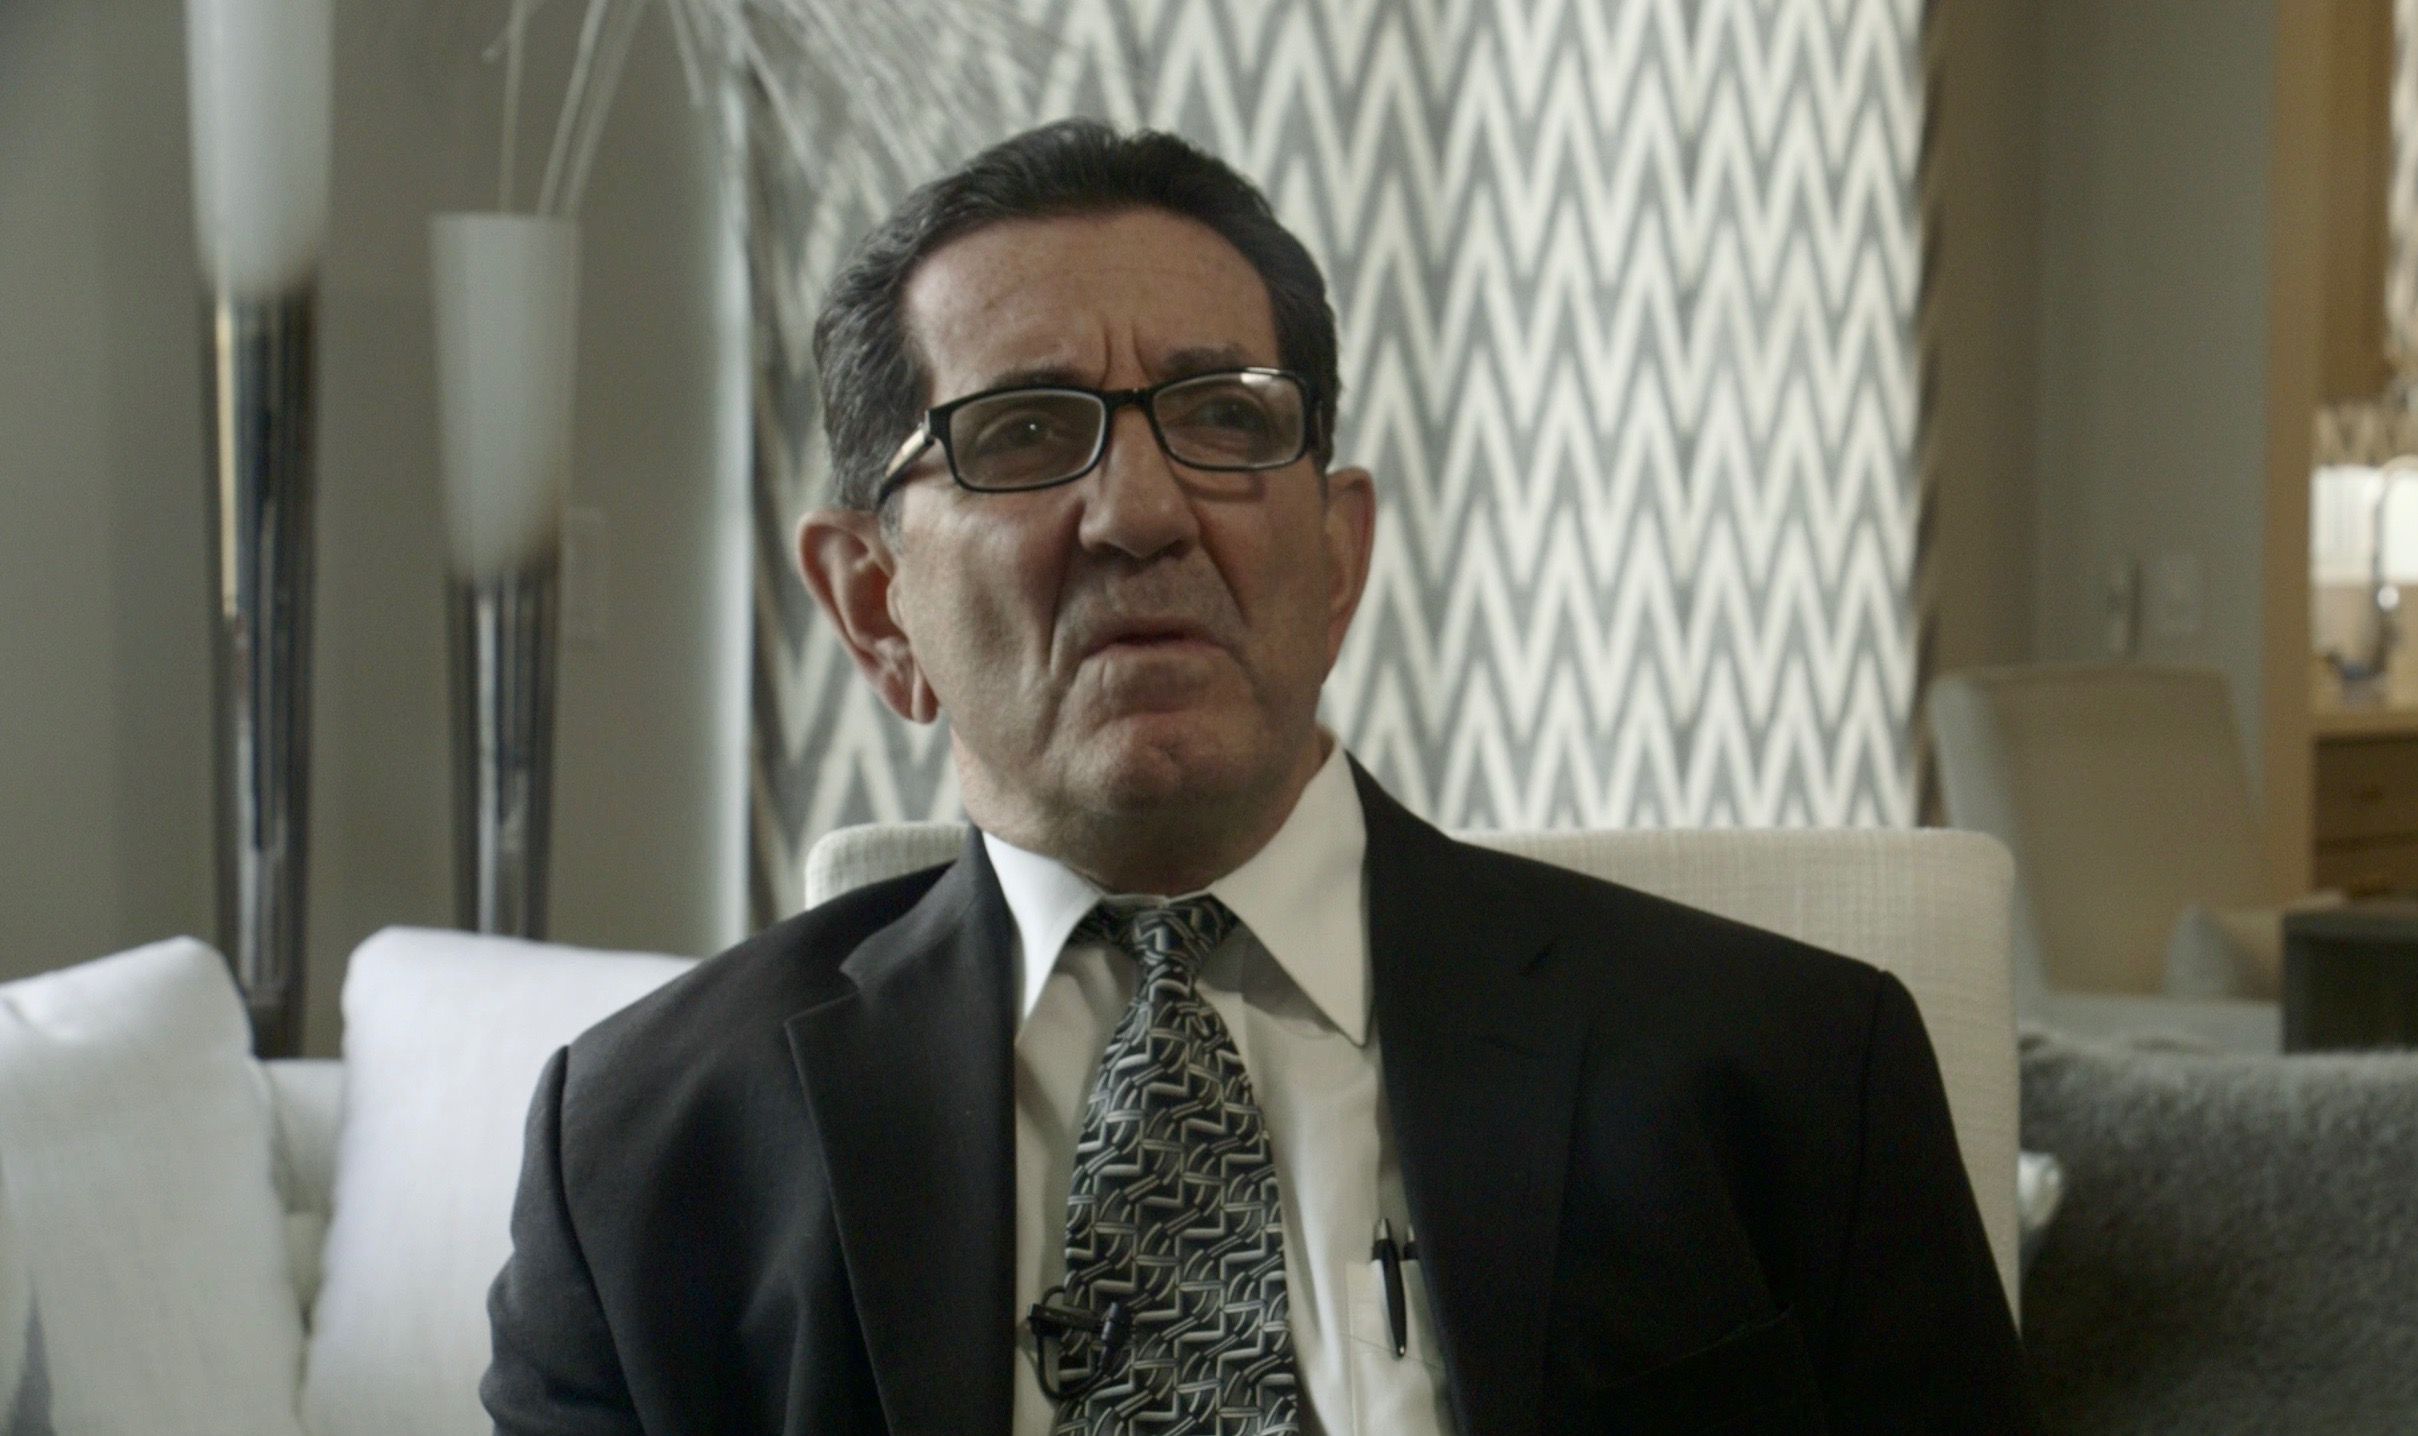 Louis Pilato in 2018 being interview for the first time about the case since it happened.